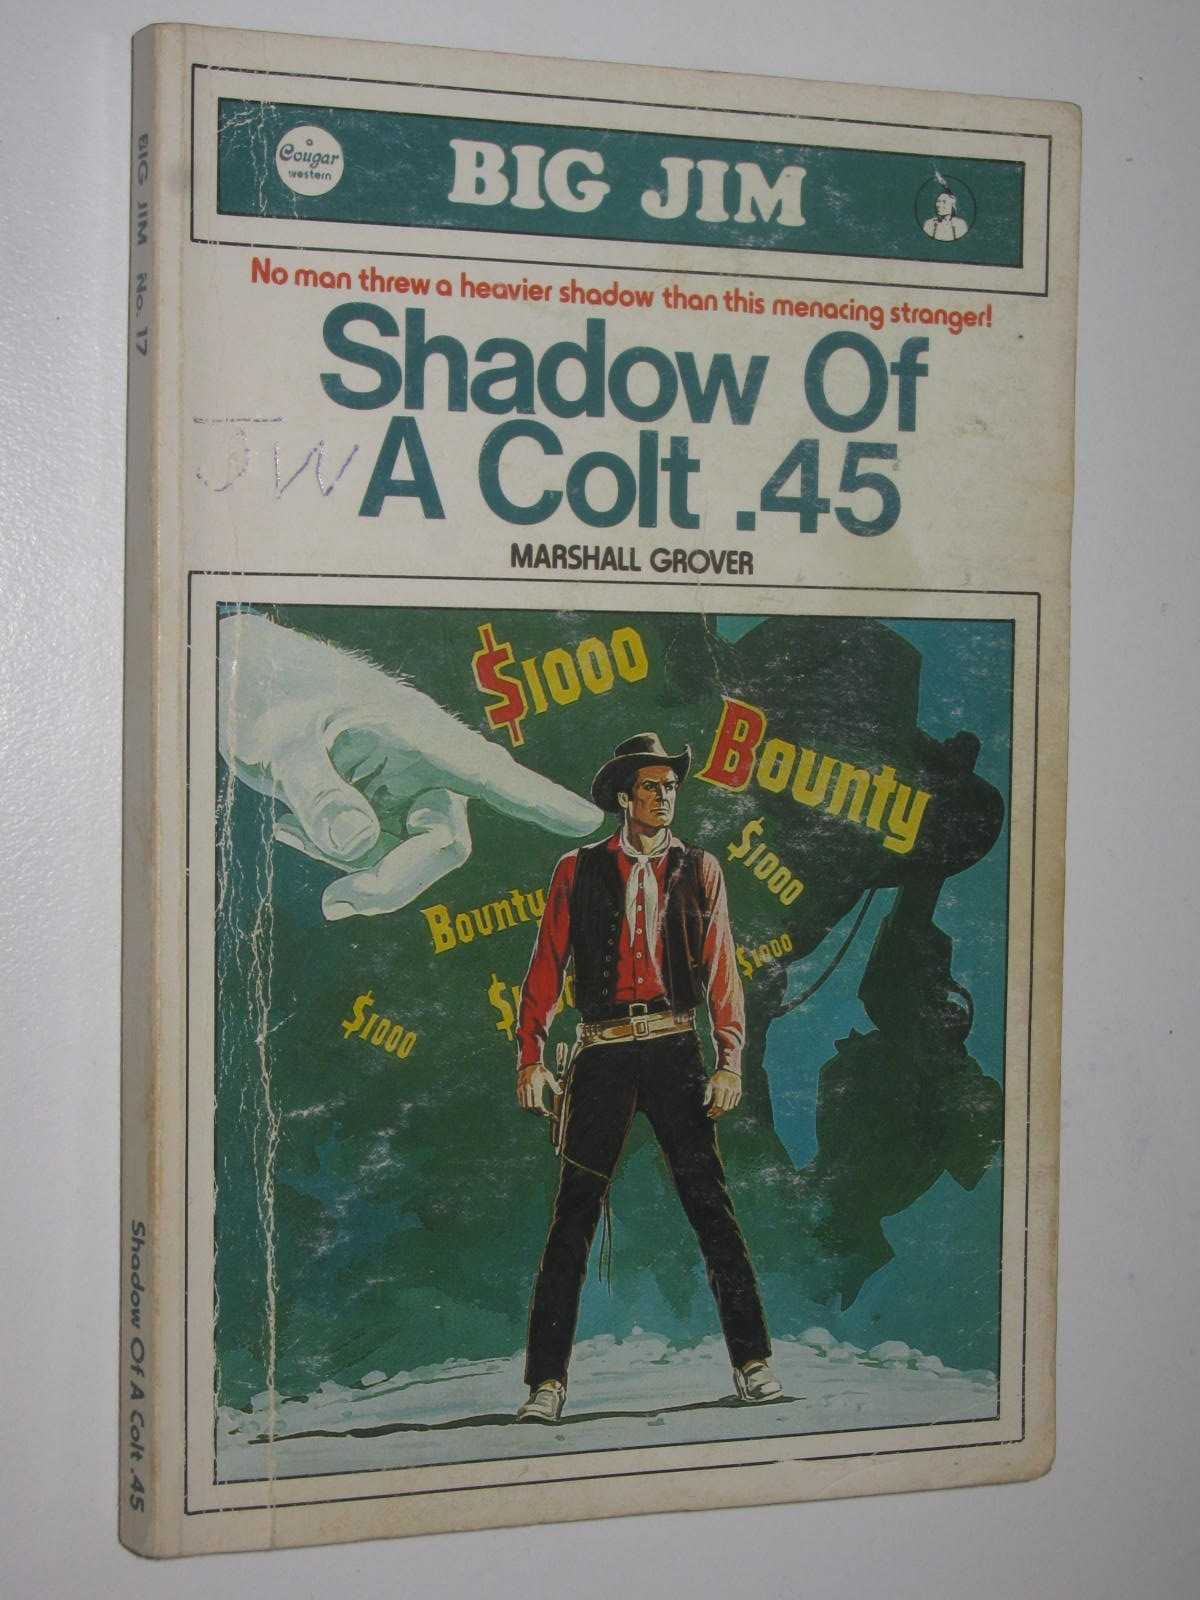 Image for Shadow of a Colt .45 - Big Jim [Cougar Western] Series #17